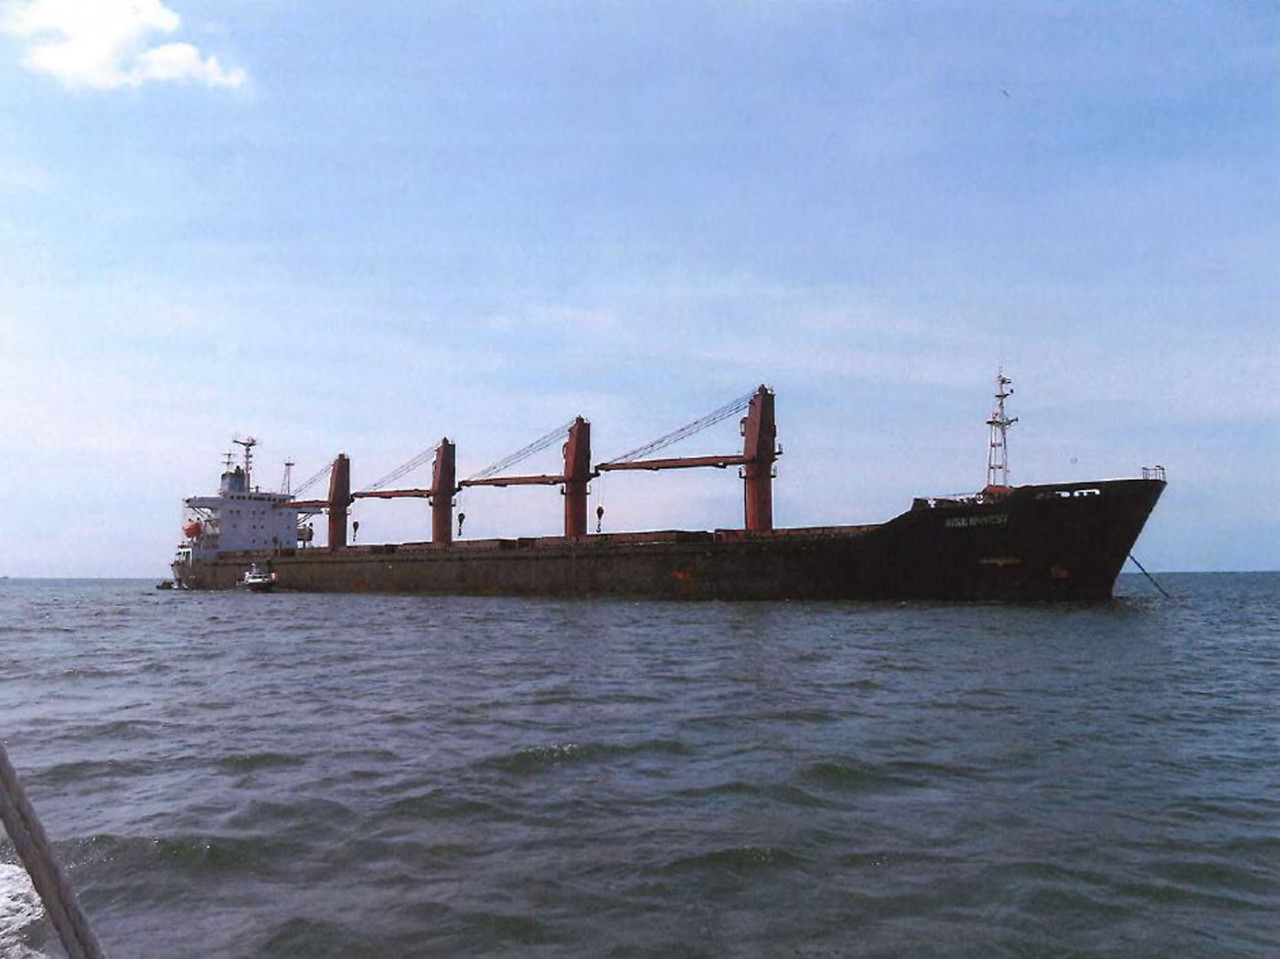 Wise Honest, a North Korean cargo ship allegedly used to export coal in violation of UN and US sanctions on May. 8, 2019. (Website of the US Justice Department)